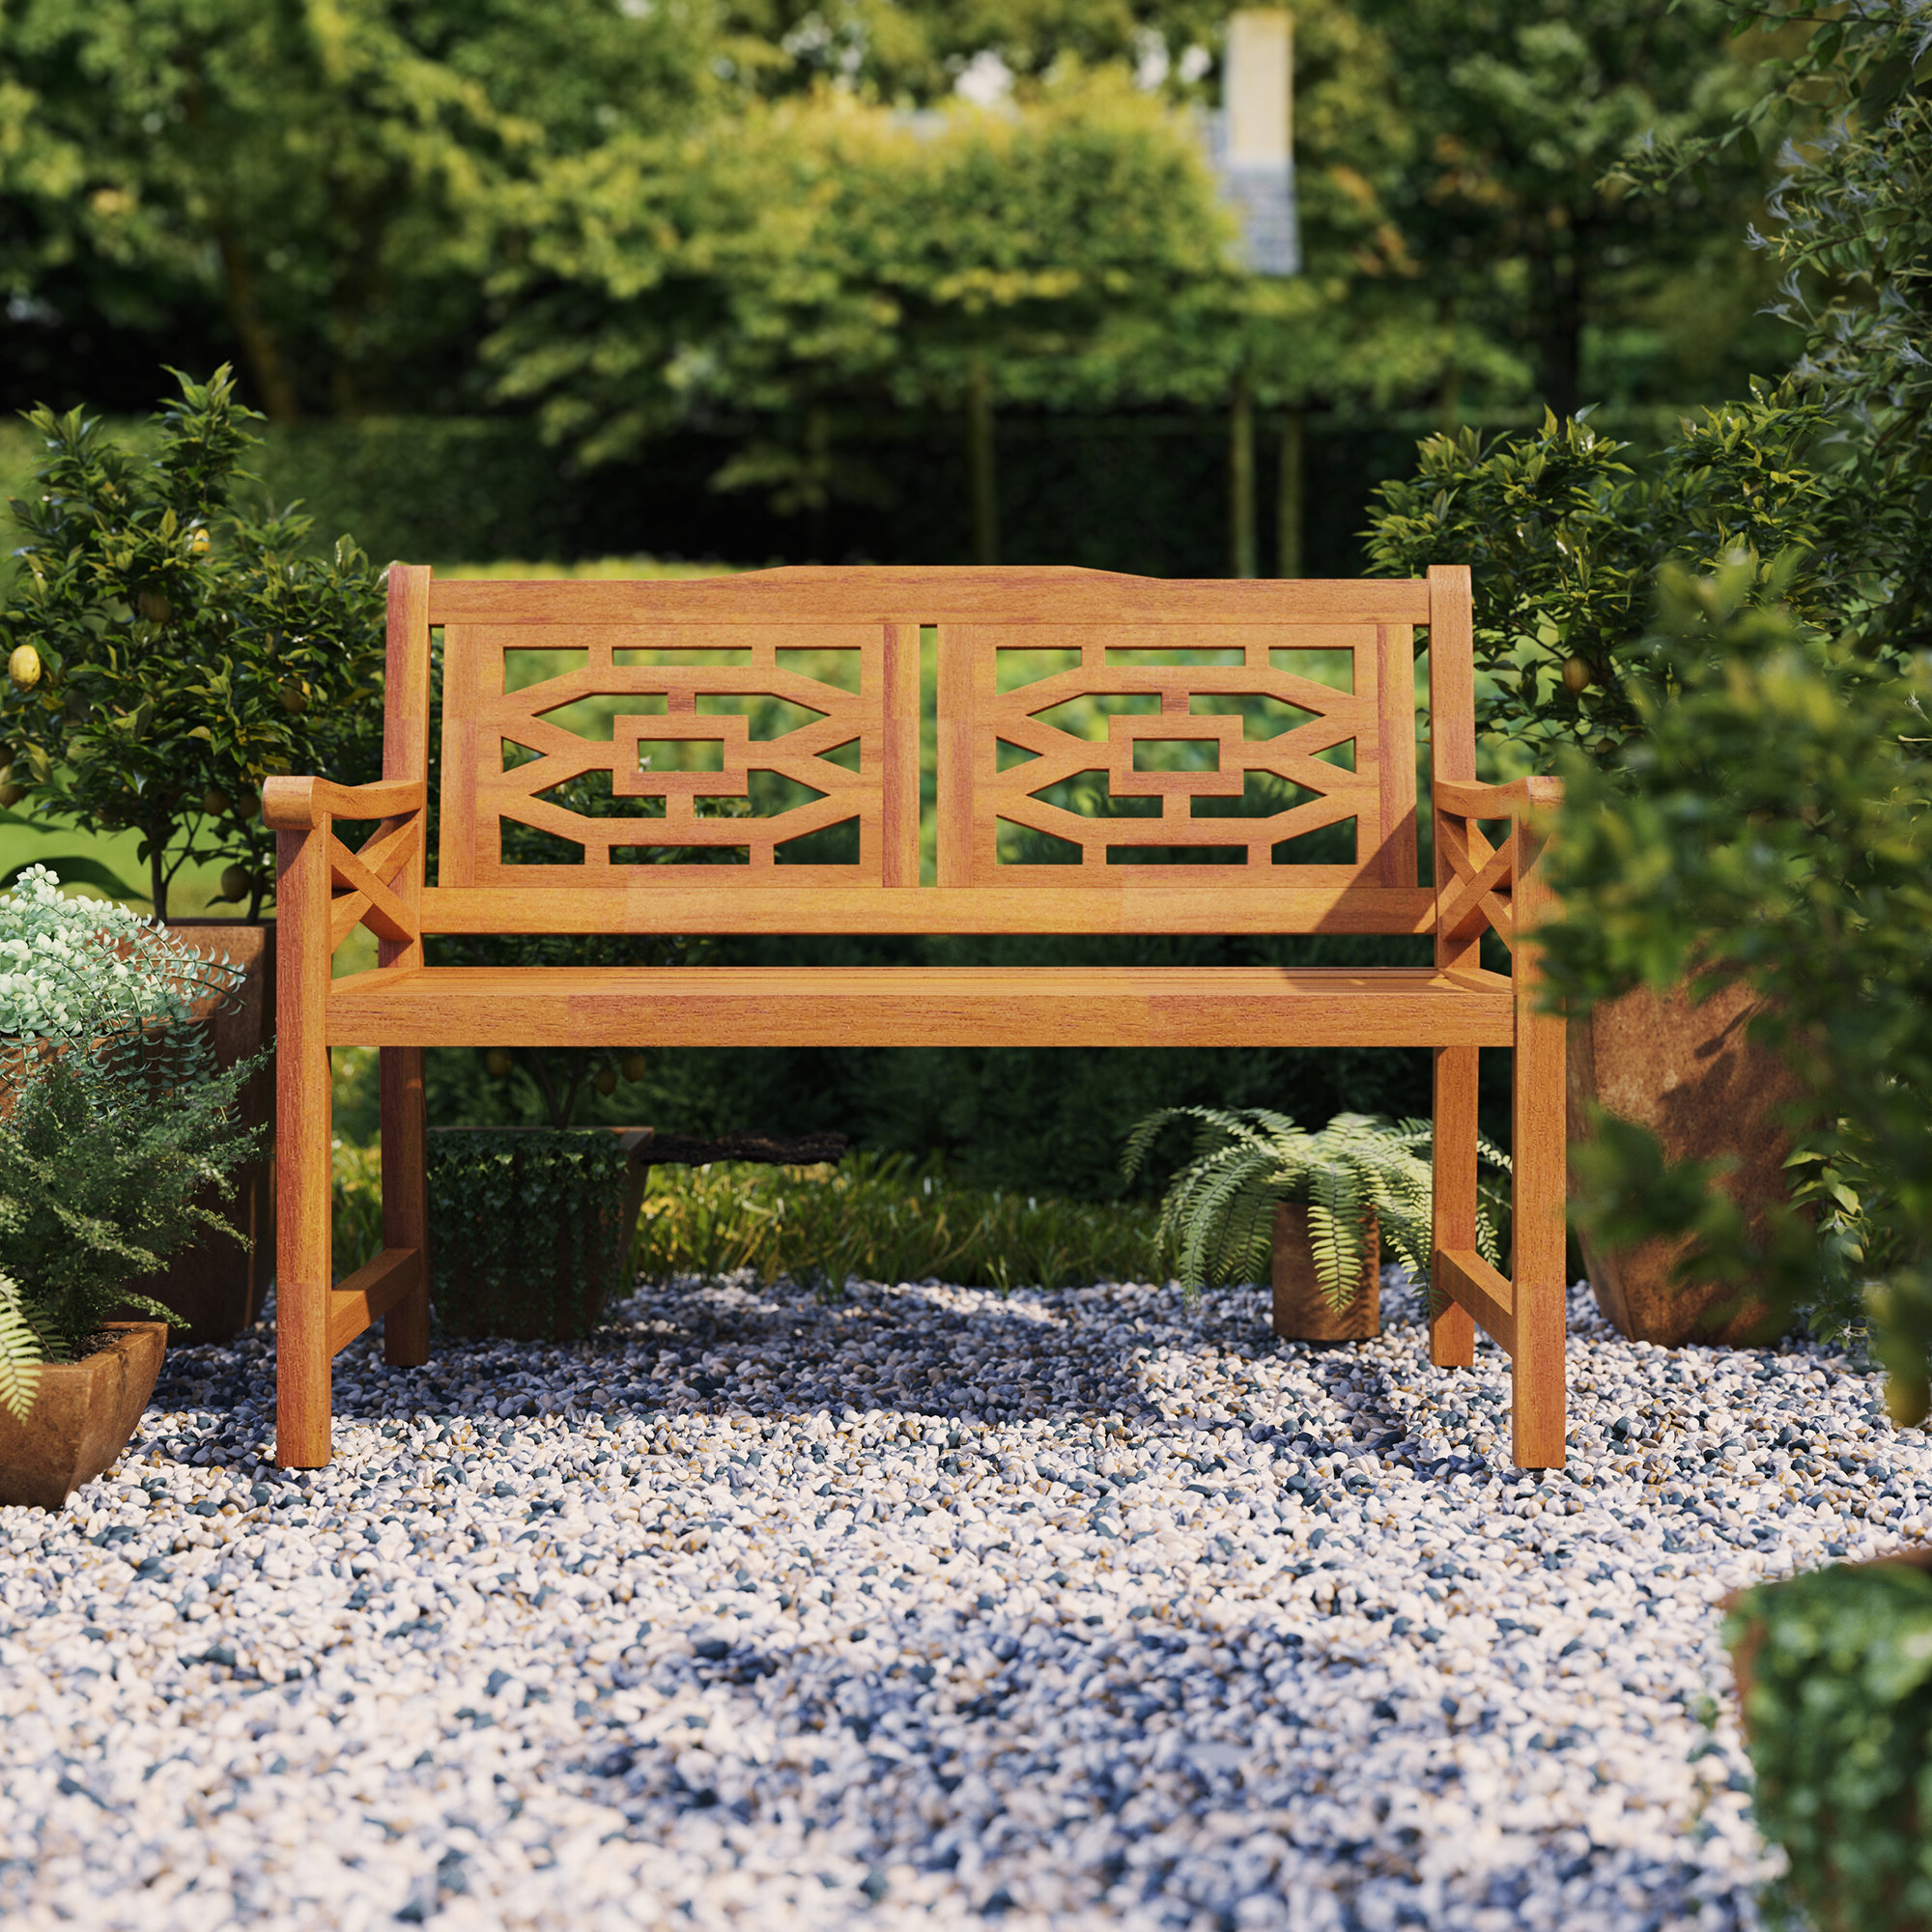 Beeches Wooden Garden Bench For Well Liked Ahana Wooden Garden Benches (View 10 of 30)